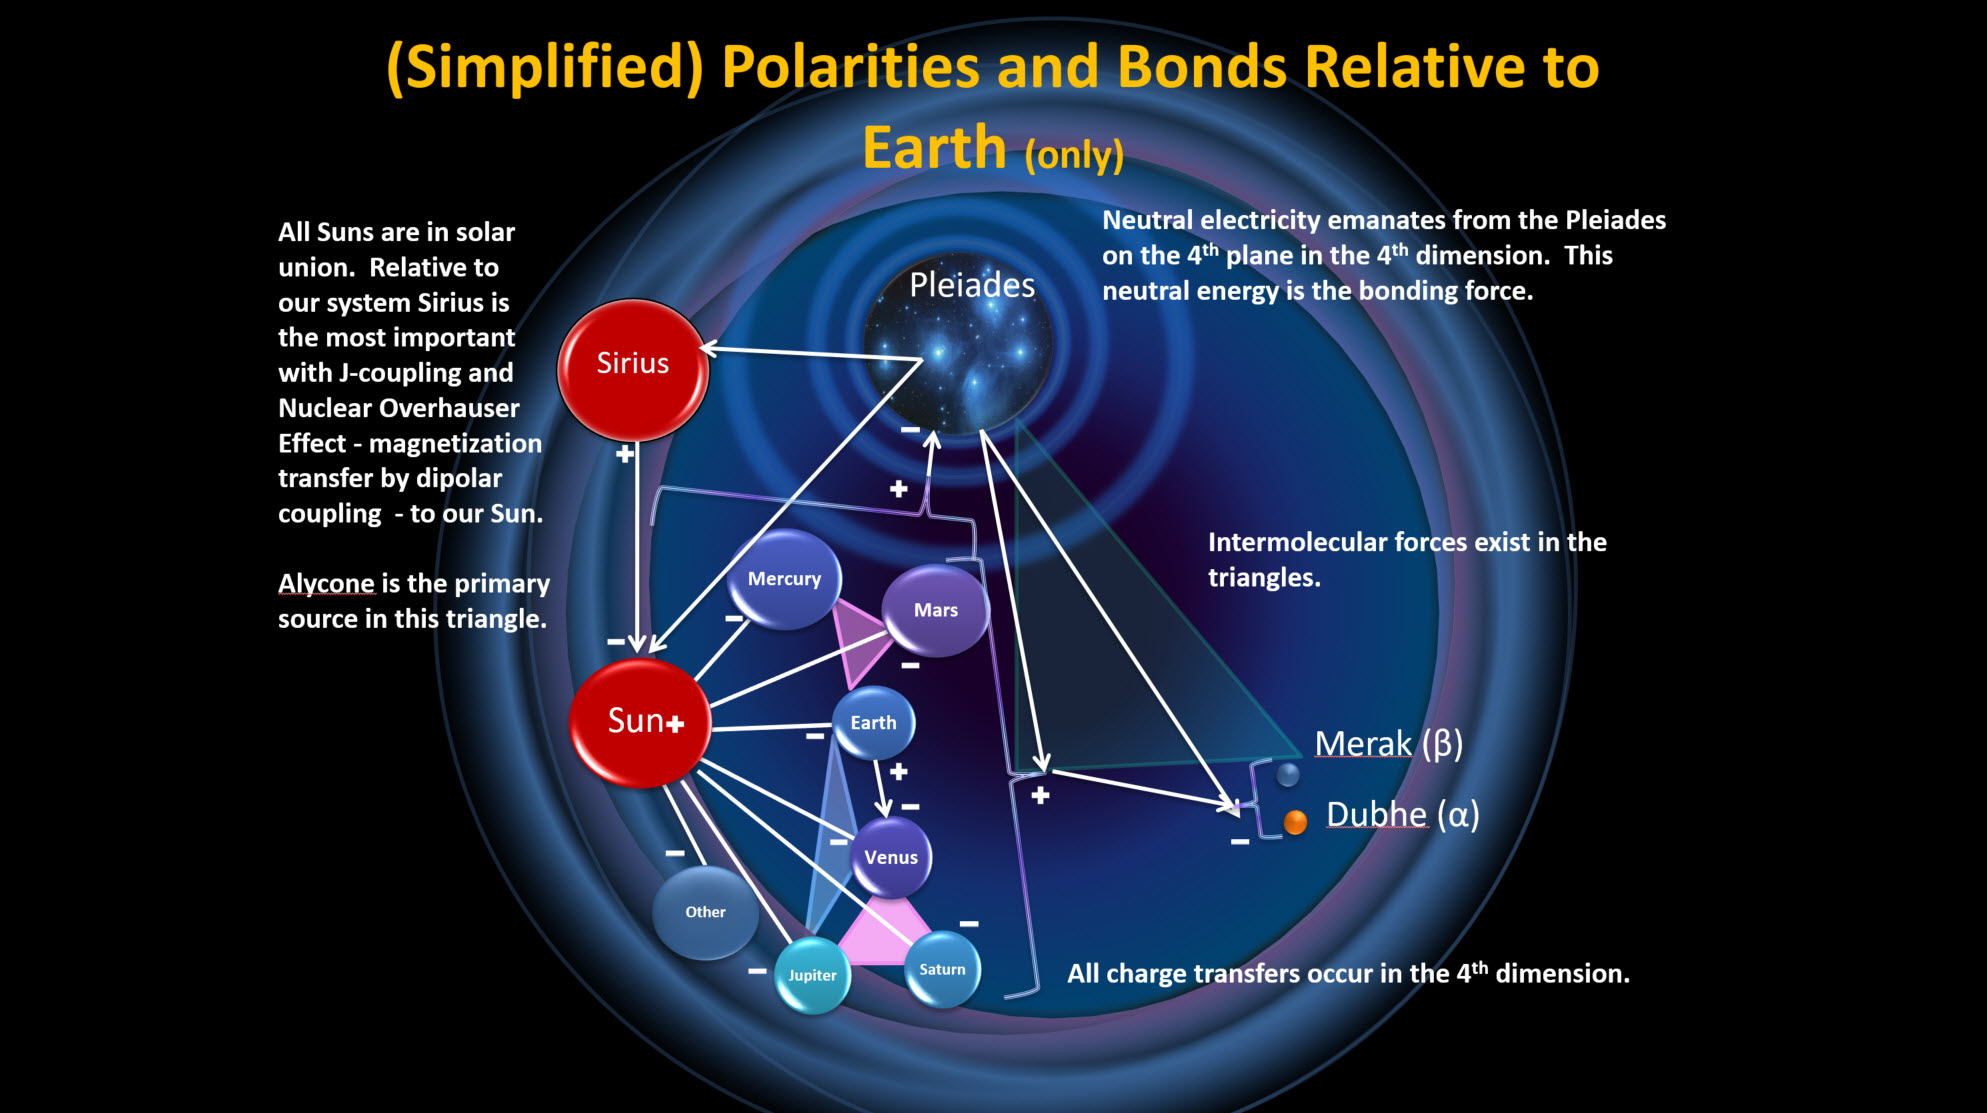 (Simplified) Polarities and Bonds Relative to Earth